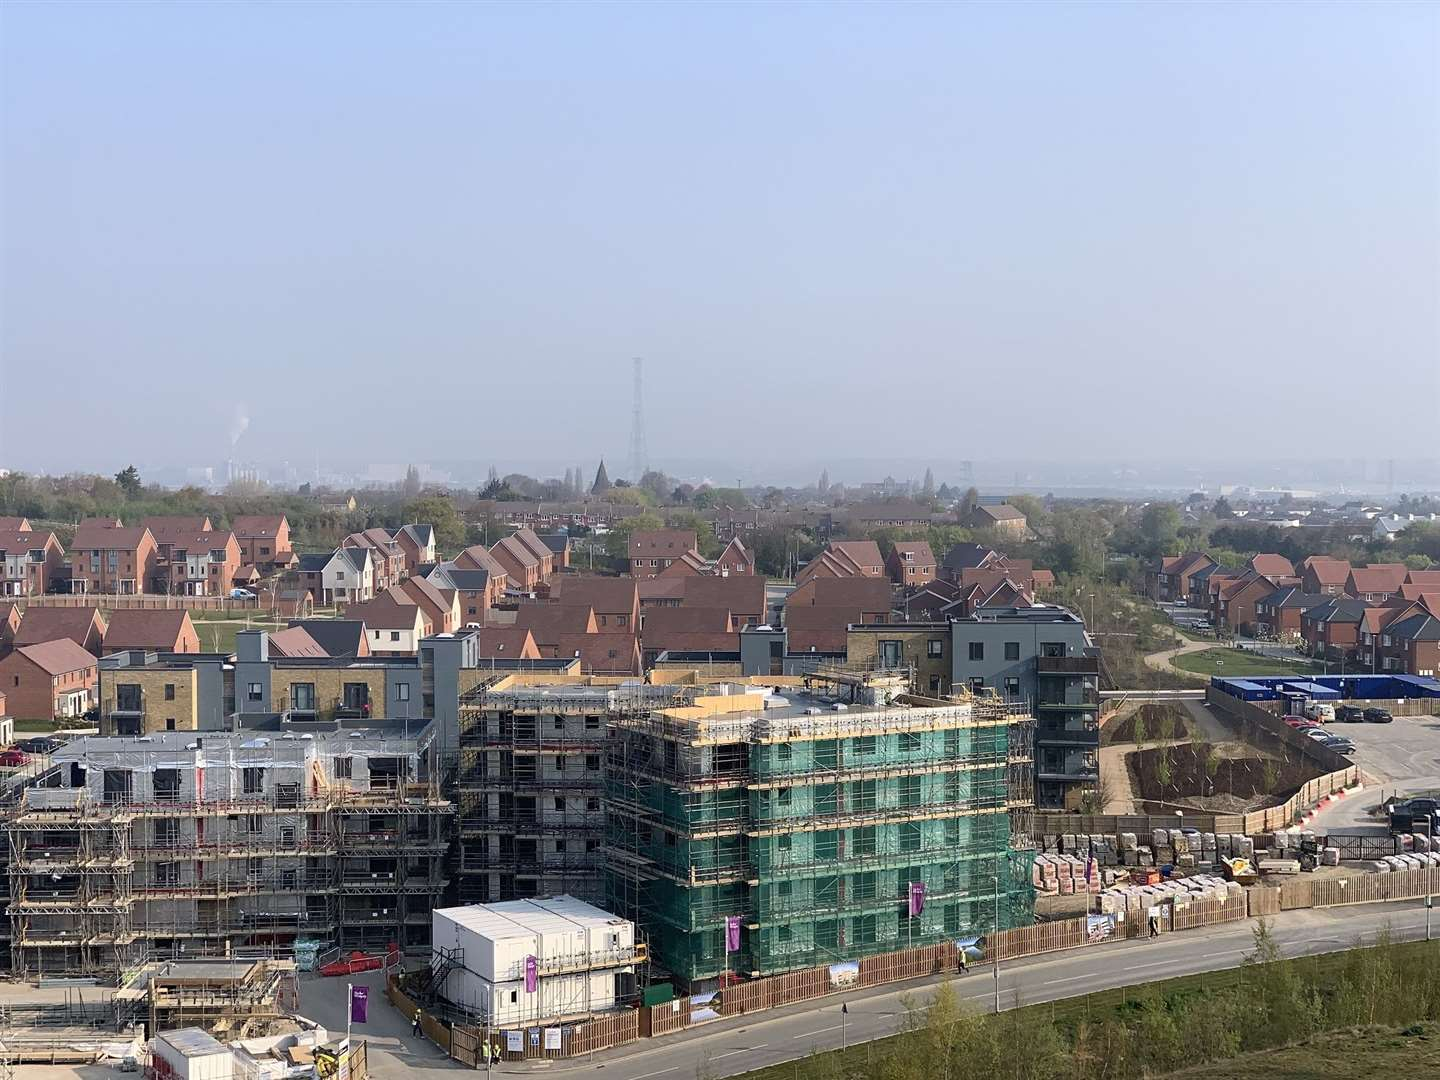 Construction work on Ebbsfleet Garden City (13834591)